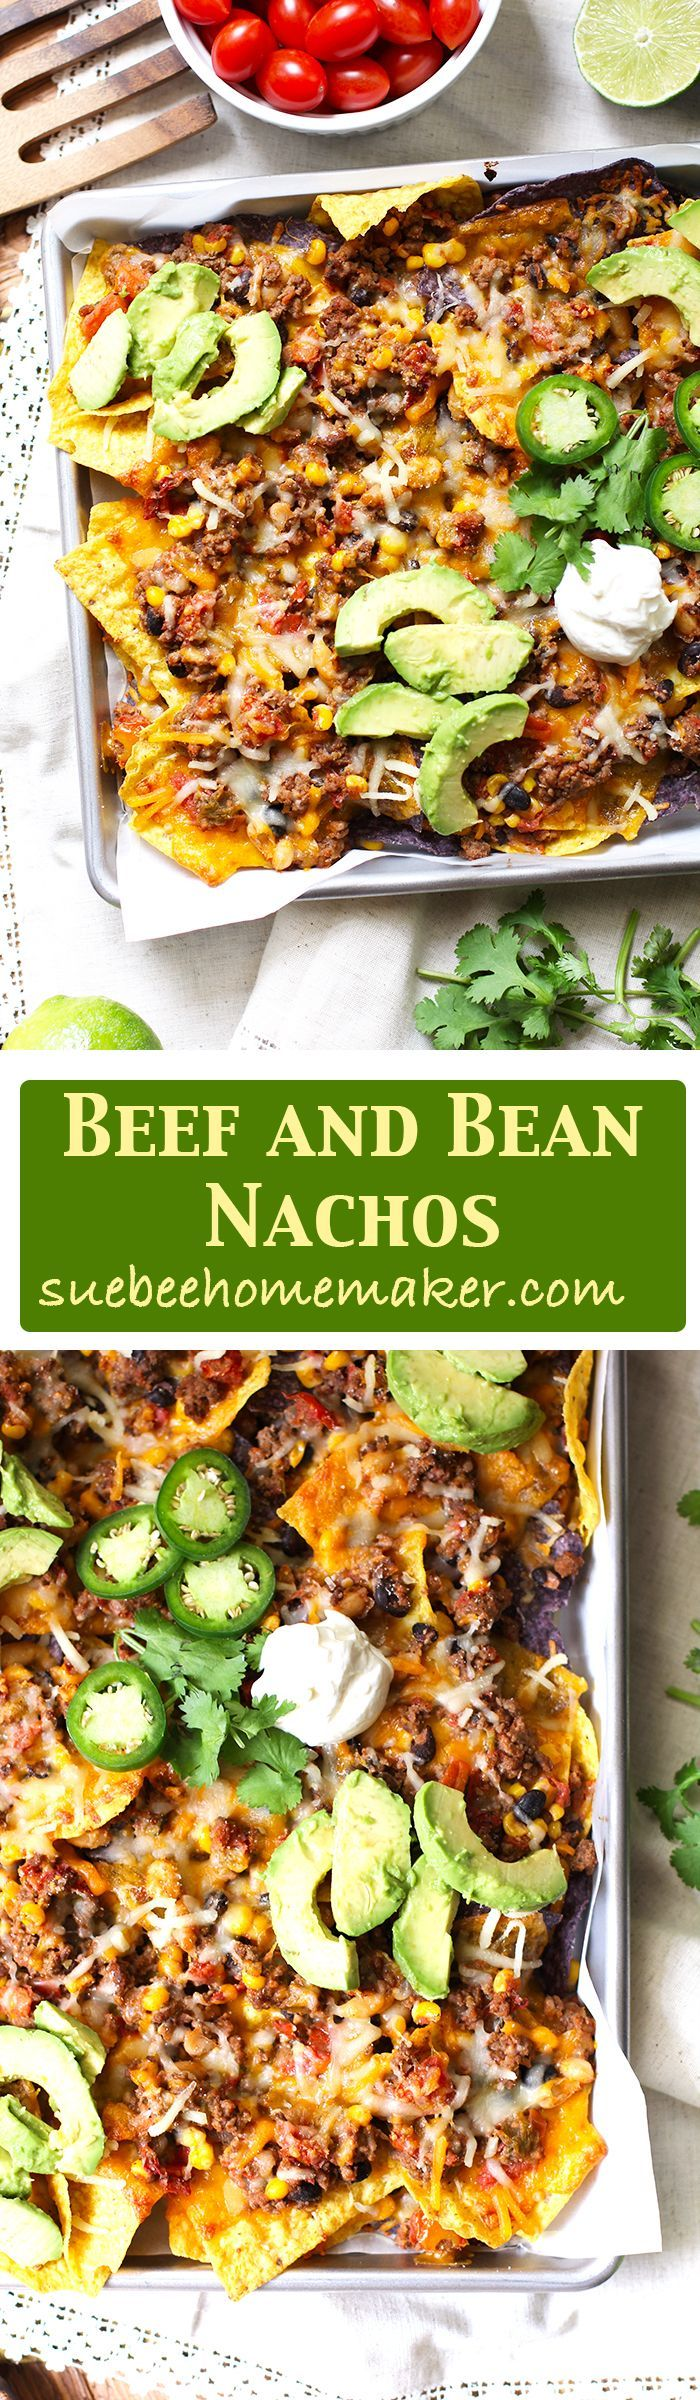 Beef and Bean Nachos are a perfect party food that everyone will love. Bake for just 15 minutes, top with your favorite condiments, and dig in.